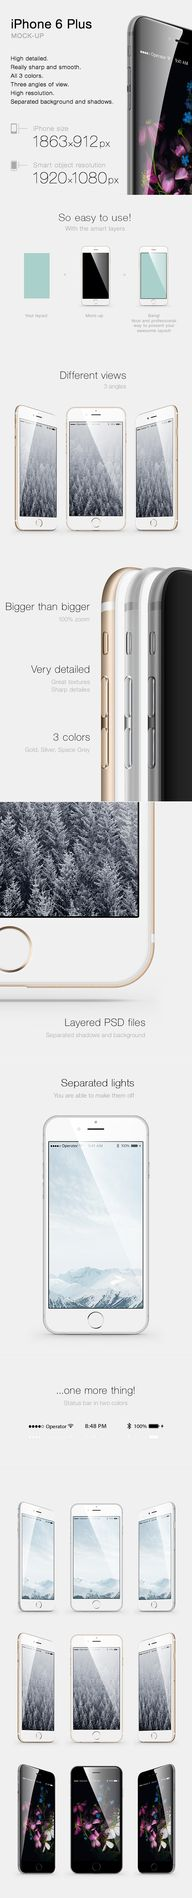 iPhone 6 Plus Mock-u